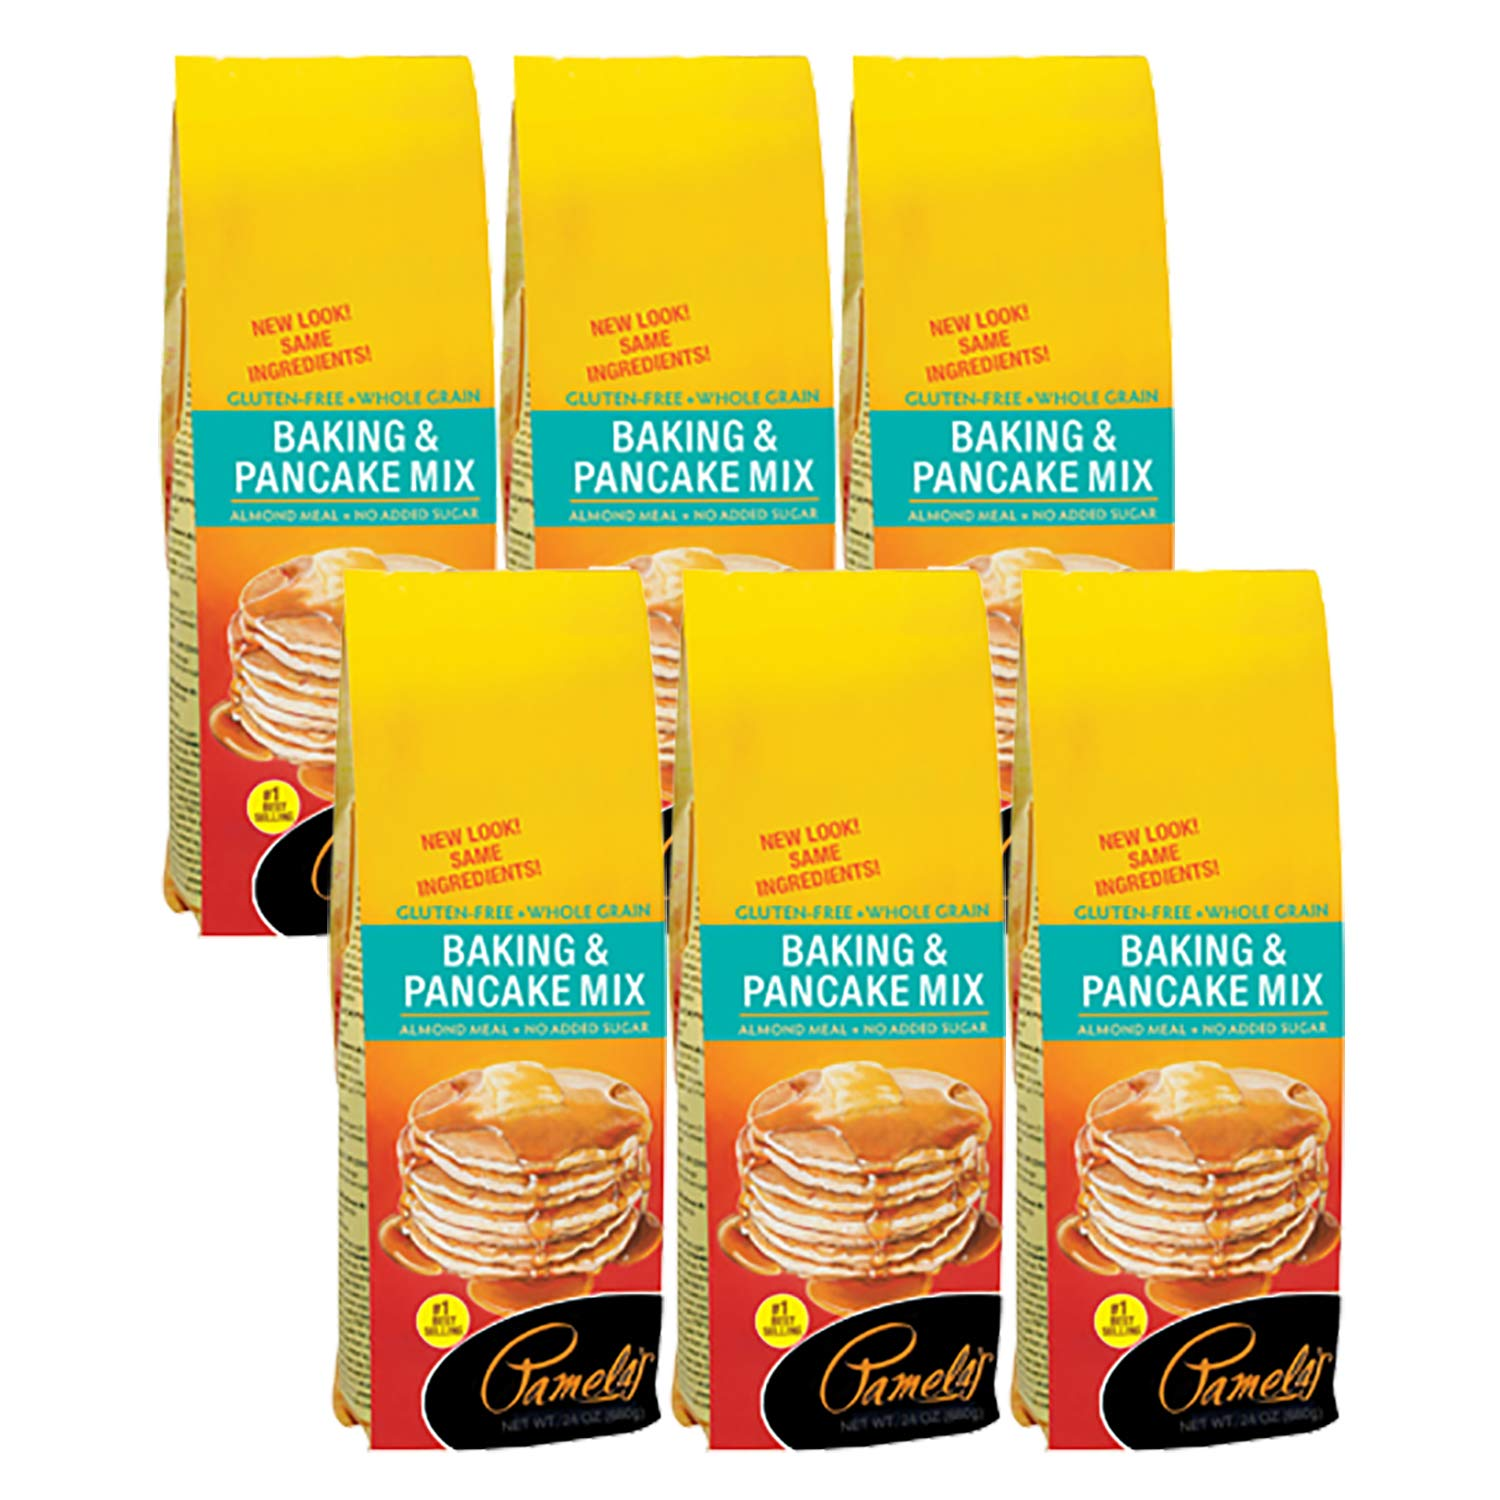 Pamela's Products Gluten and Wheat Free Baking and Pancake Mix - 24 oz- (Pack - 6)